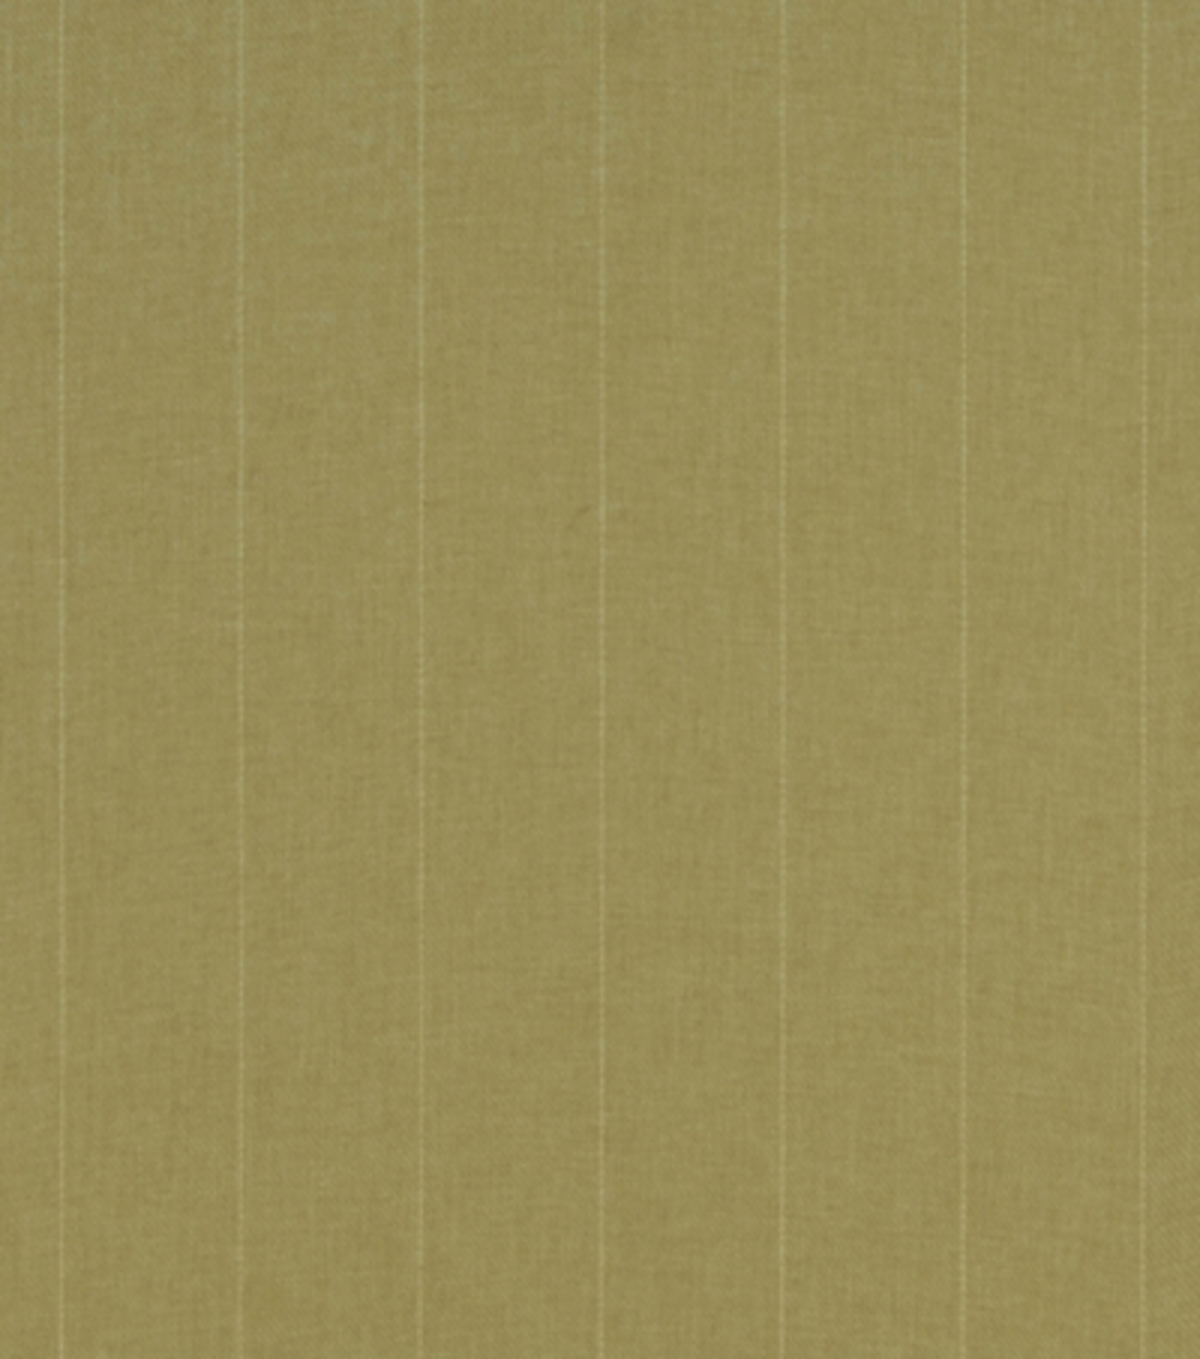 Home Decor 8\u0022x8\u0022 Fabric Swatch-Covington Armani 13 Raffia